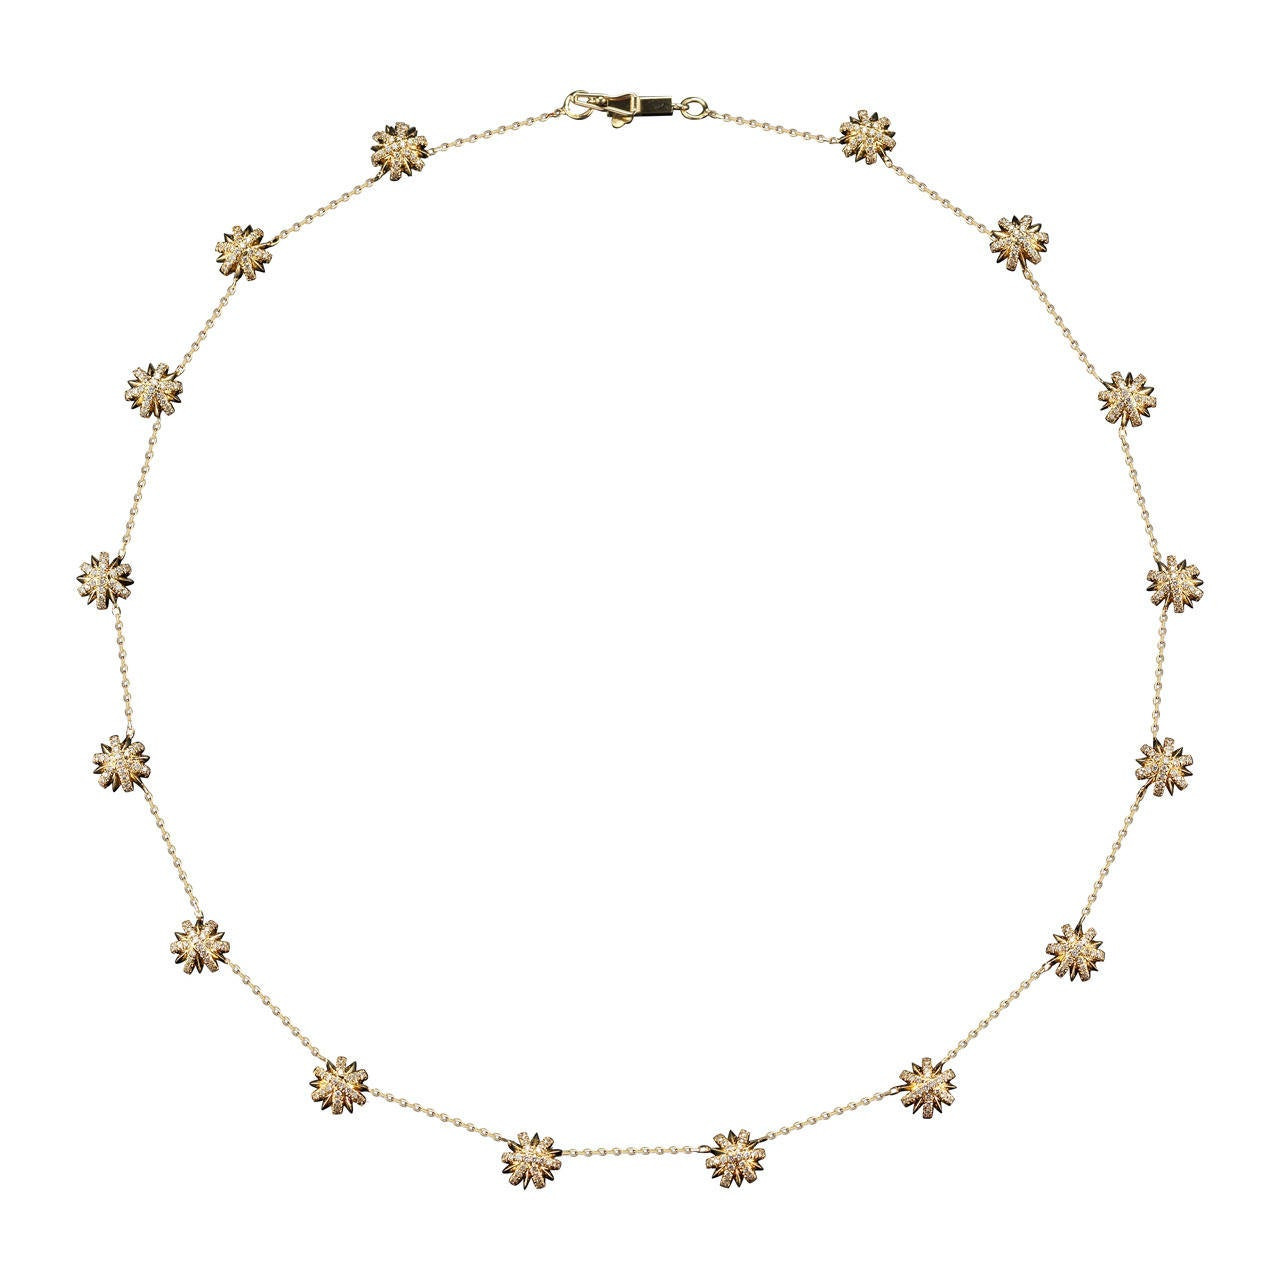 Alexandra Mor Necklace with Diamond Yellow Gold Snowflake Elements Chain